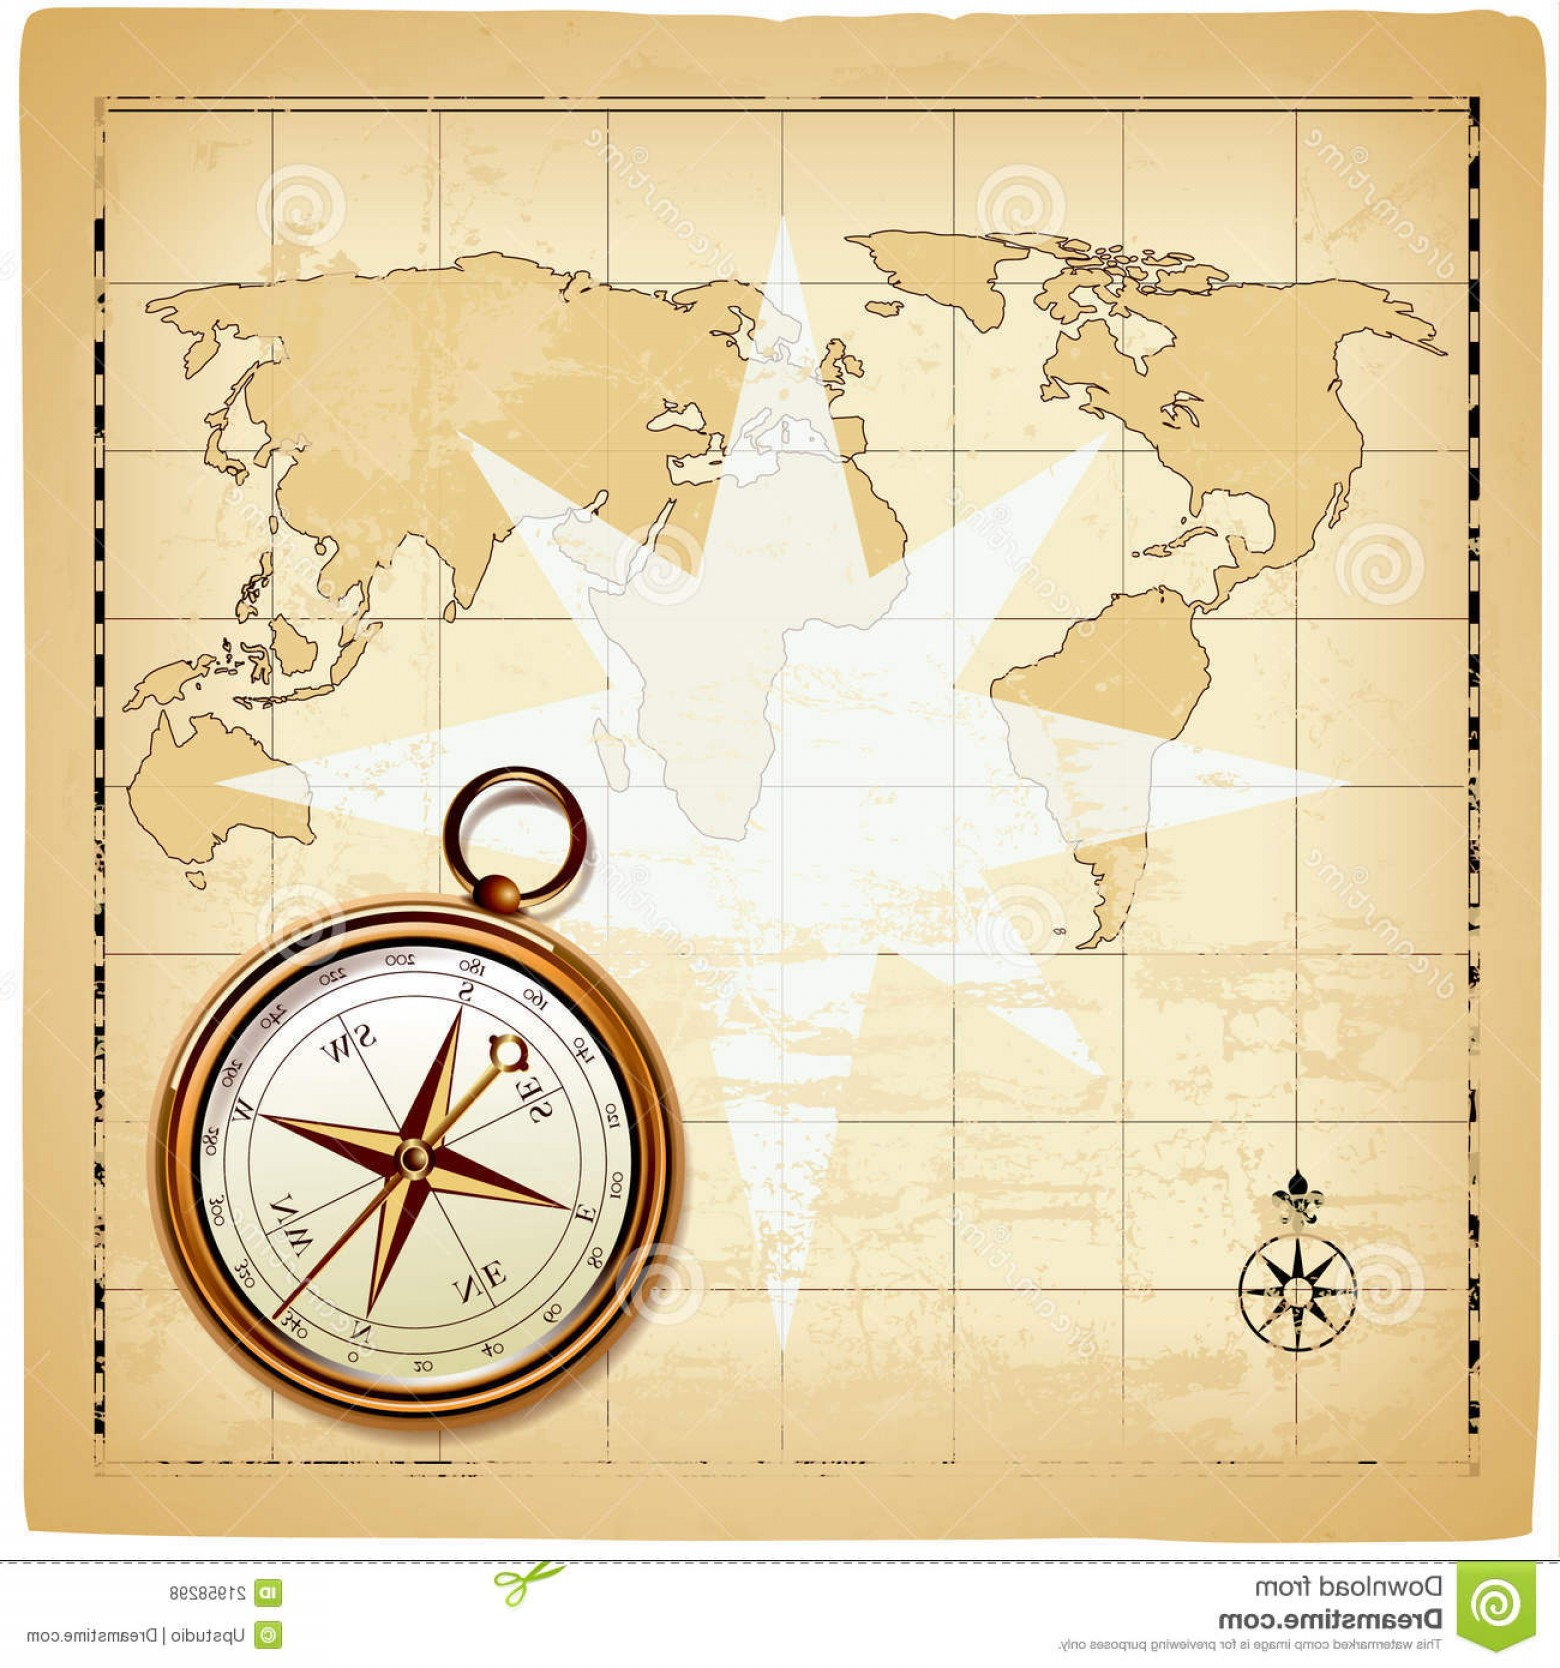 Vintage Map Clipart- Vector: Royalty Free Stock Photos Old Compass Vintage Map Image